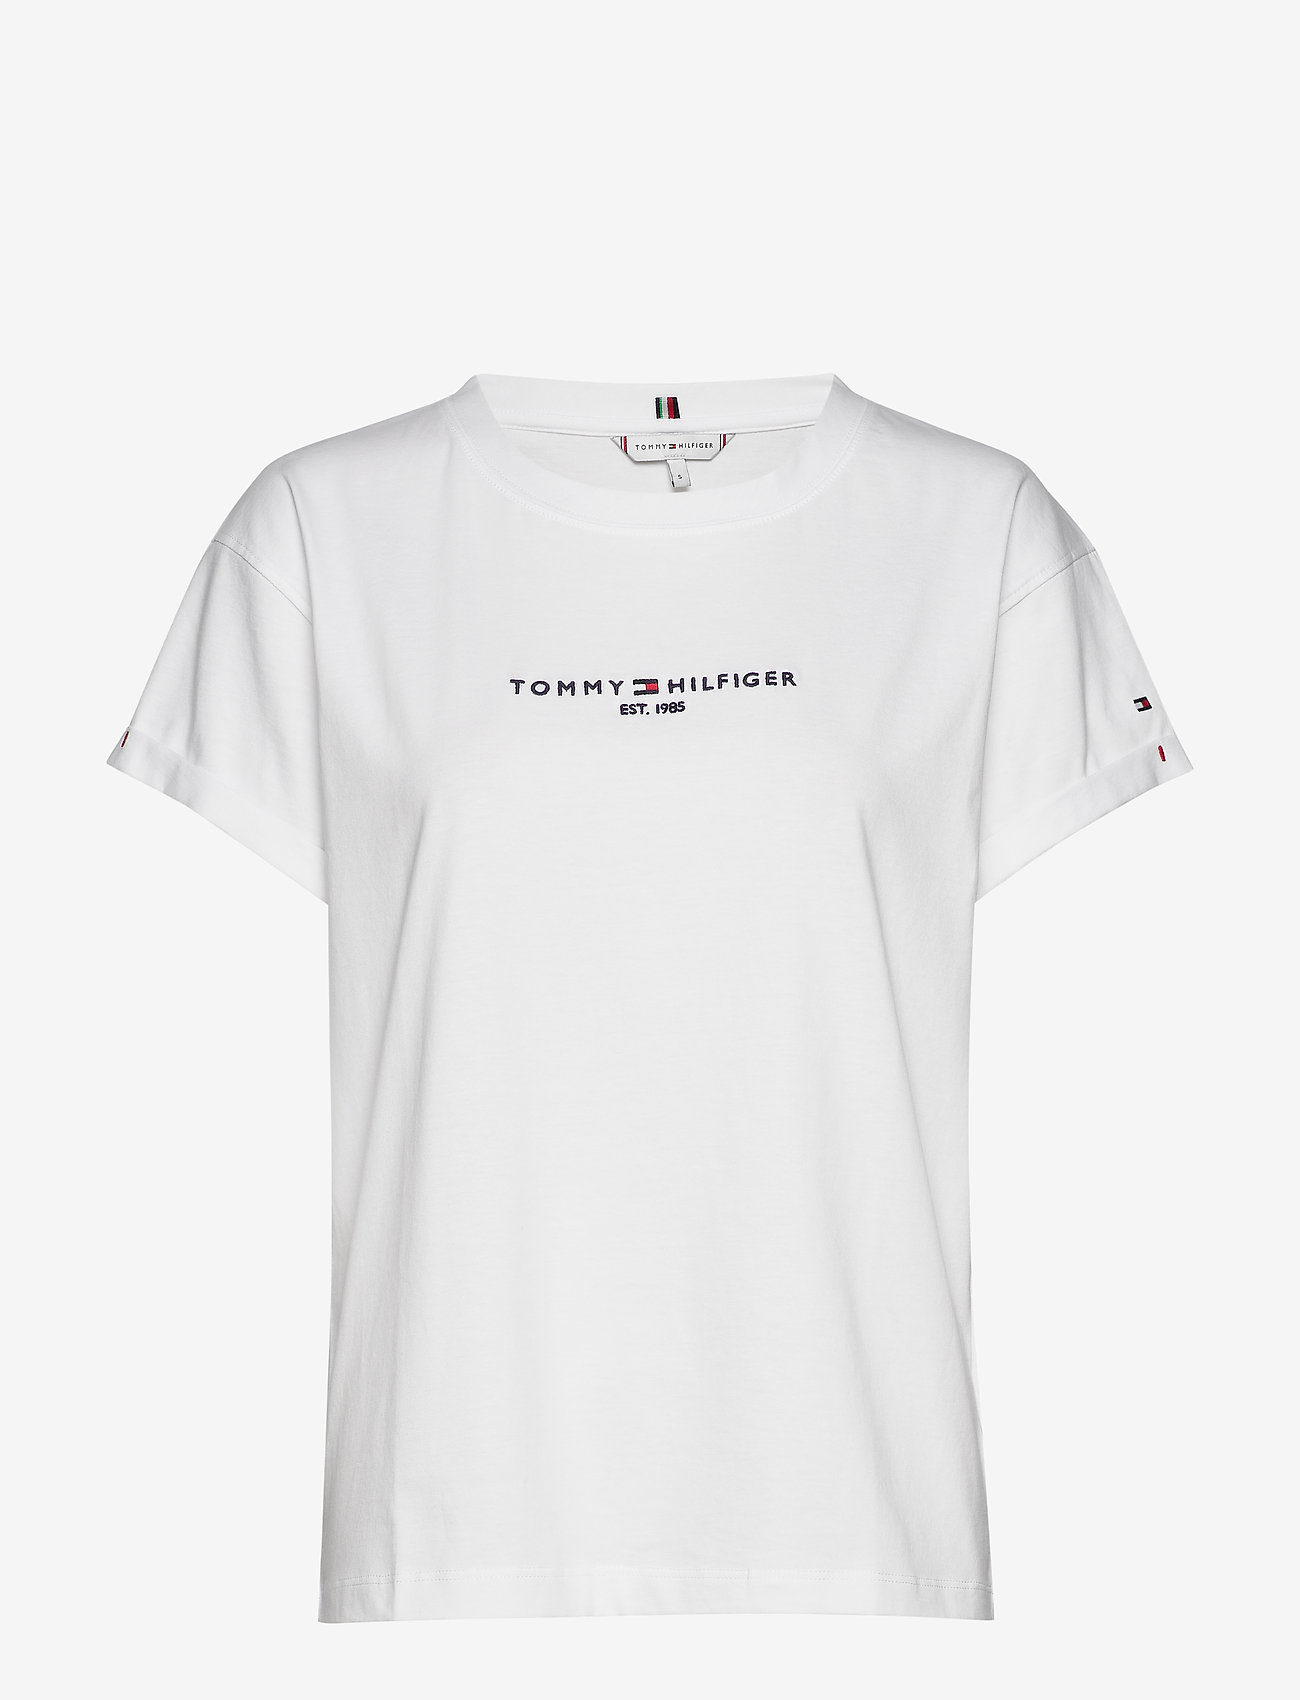 Tommy Hilfiger - TH ESS HILFIGER RLXD C-NK TOP SS - t-shirts - white